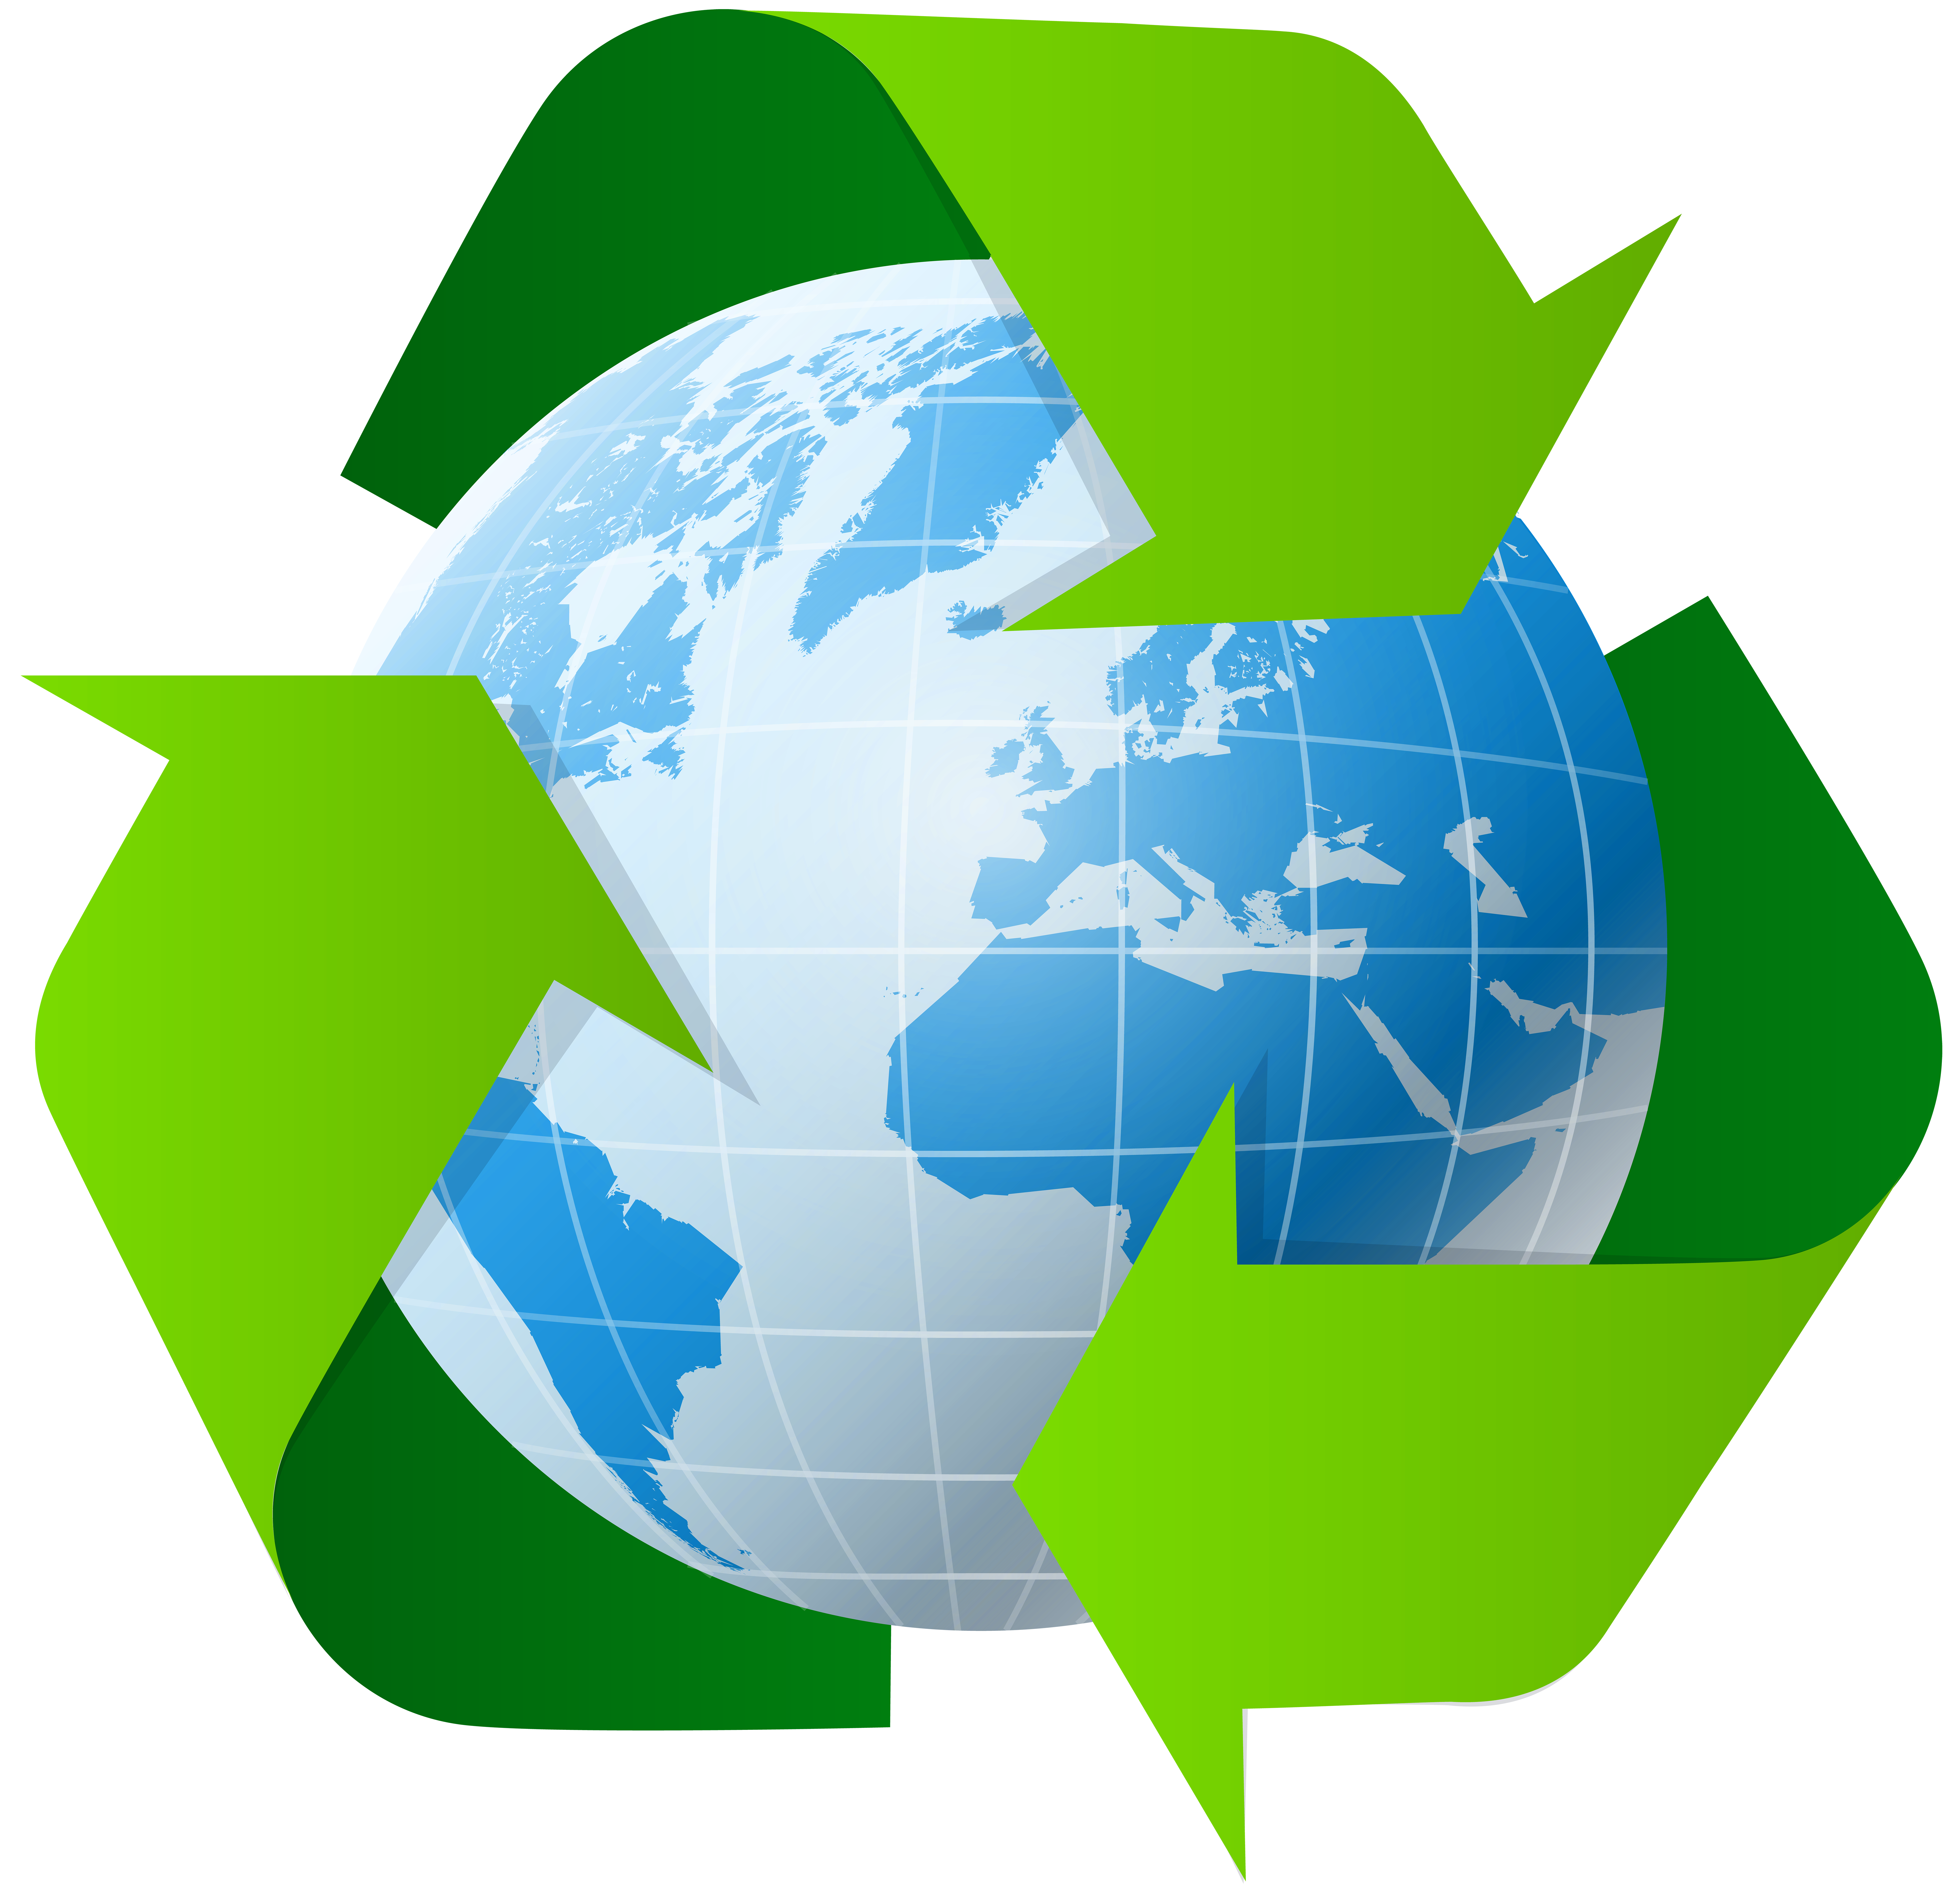 World clipart symbol png banner royalty free library Earth with Recycle Symbol PNG Clip Art - Best WEB Clipart banner royalty free library